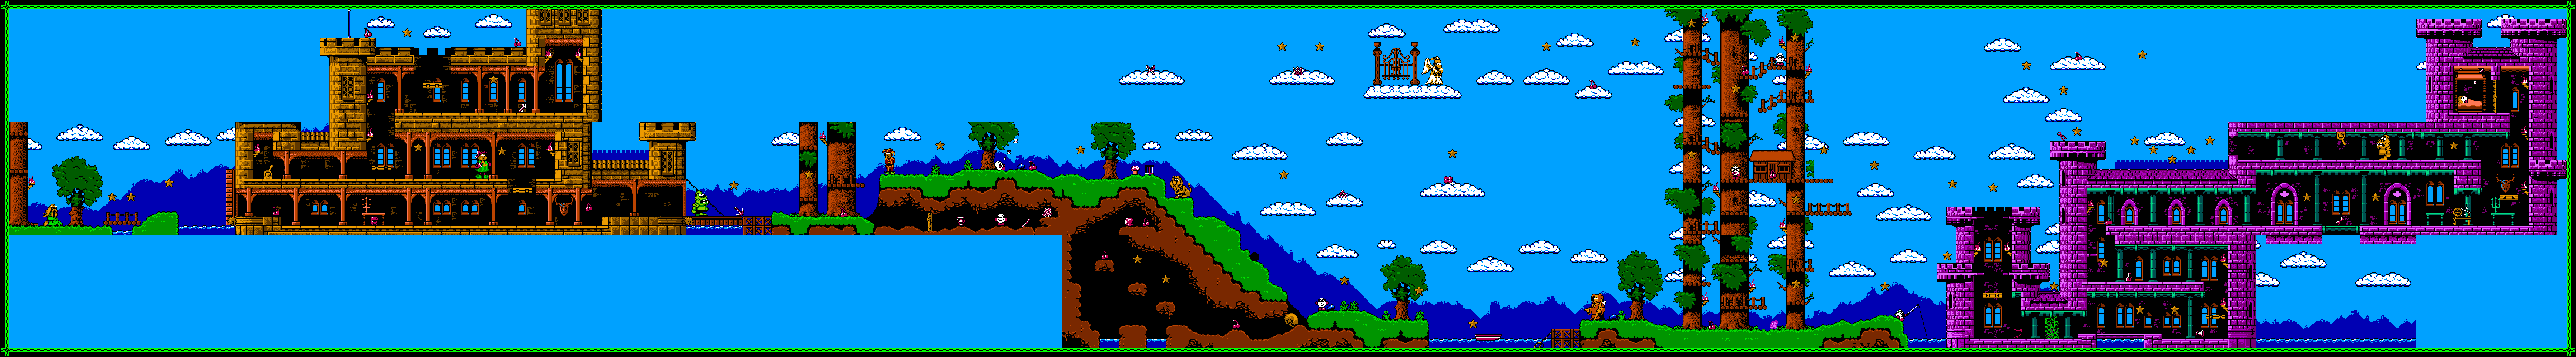 Game Map (NES)